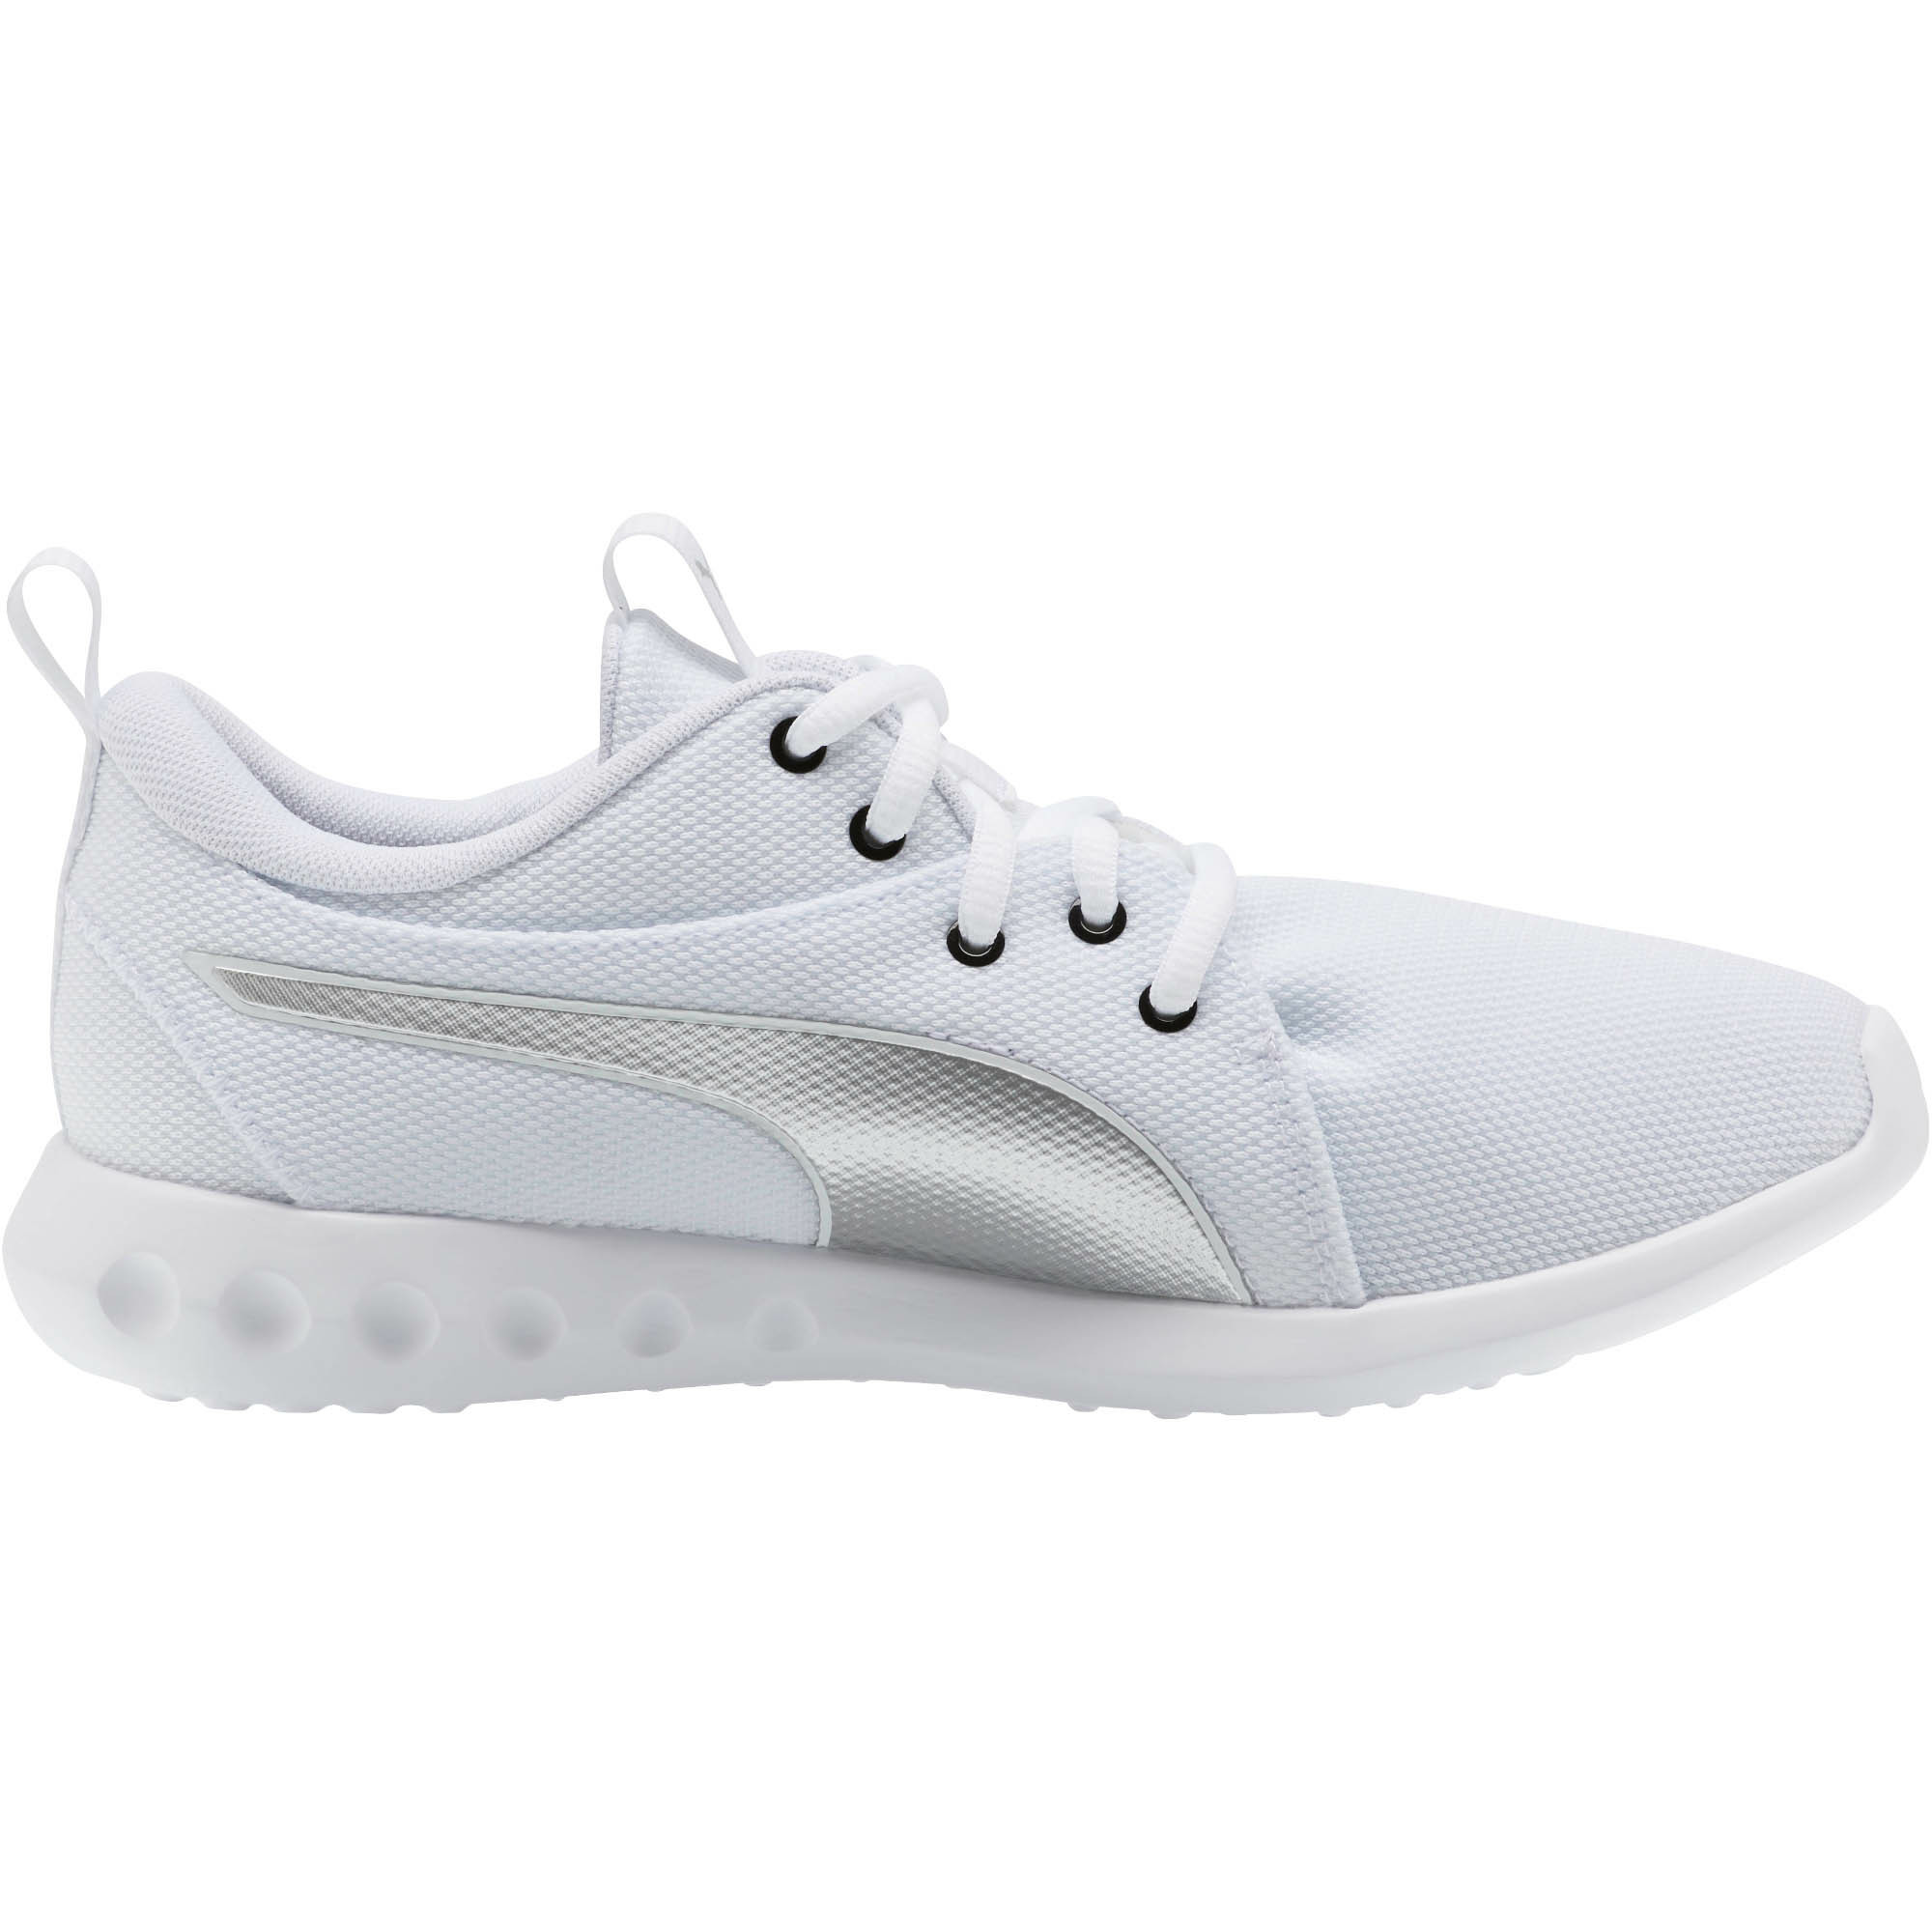 PUMA-Women-039-s-Carson-2-Cosmo-Running-Shoes thumbnail 5